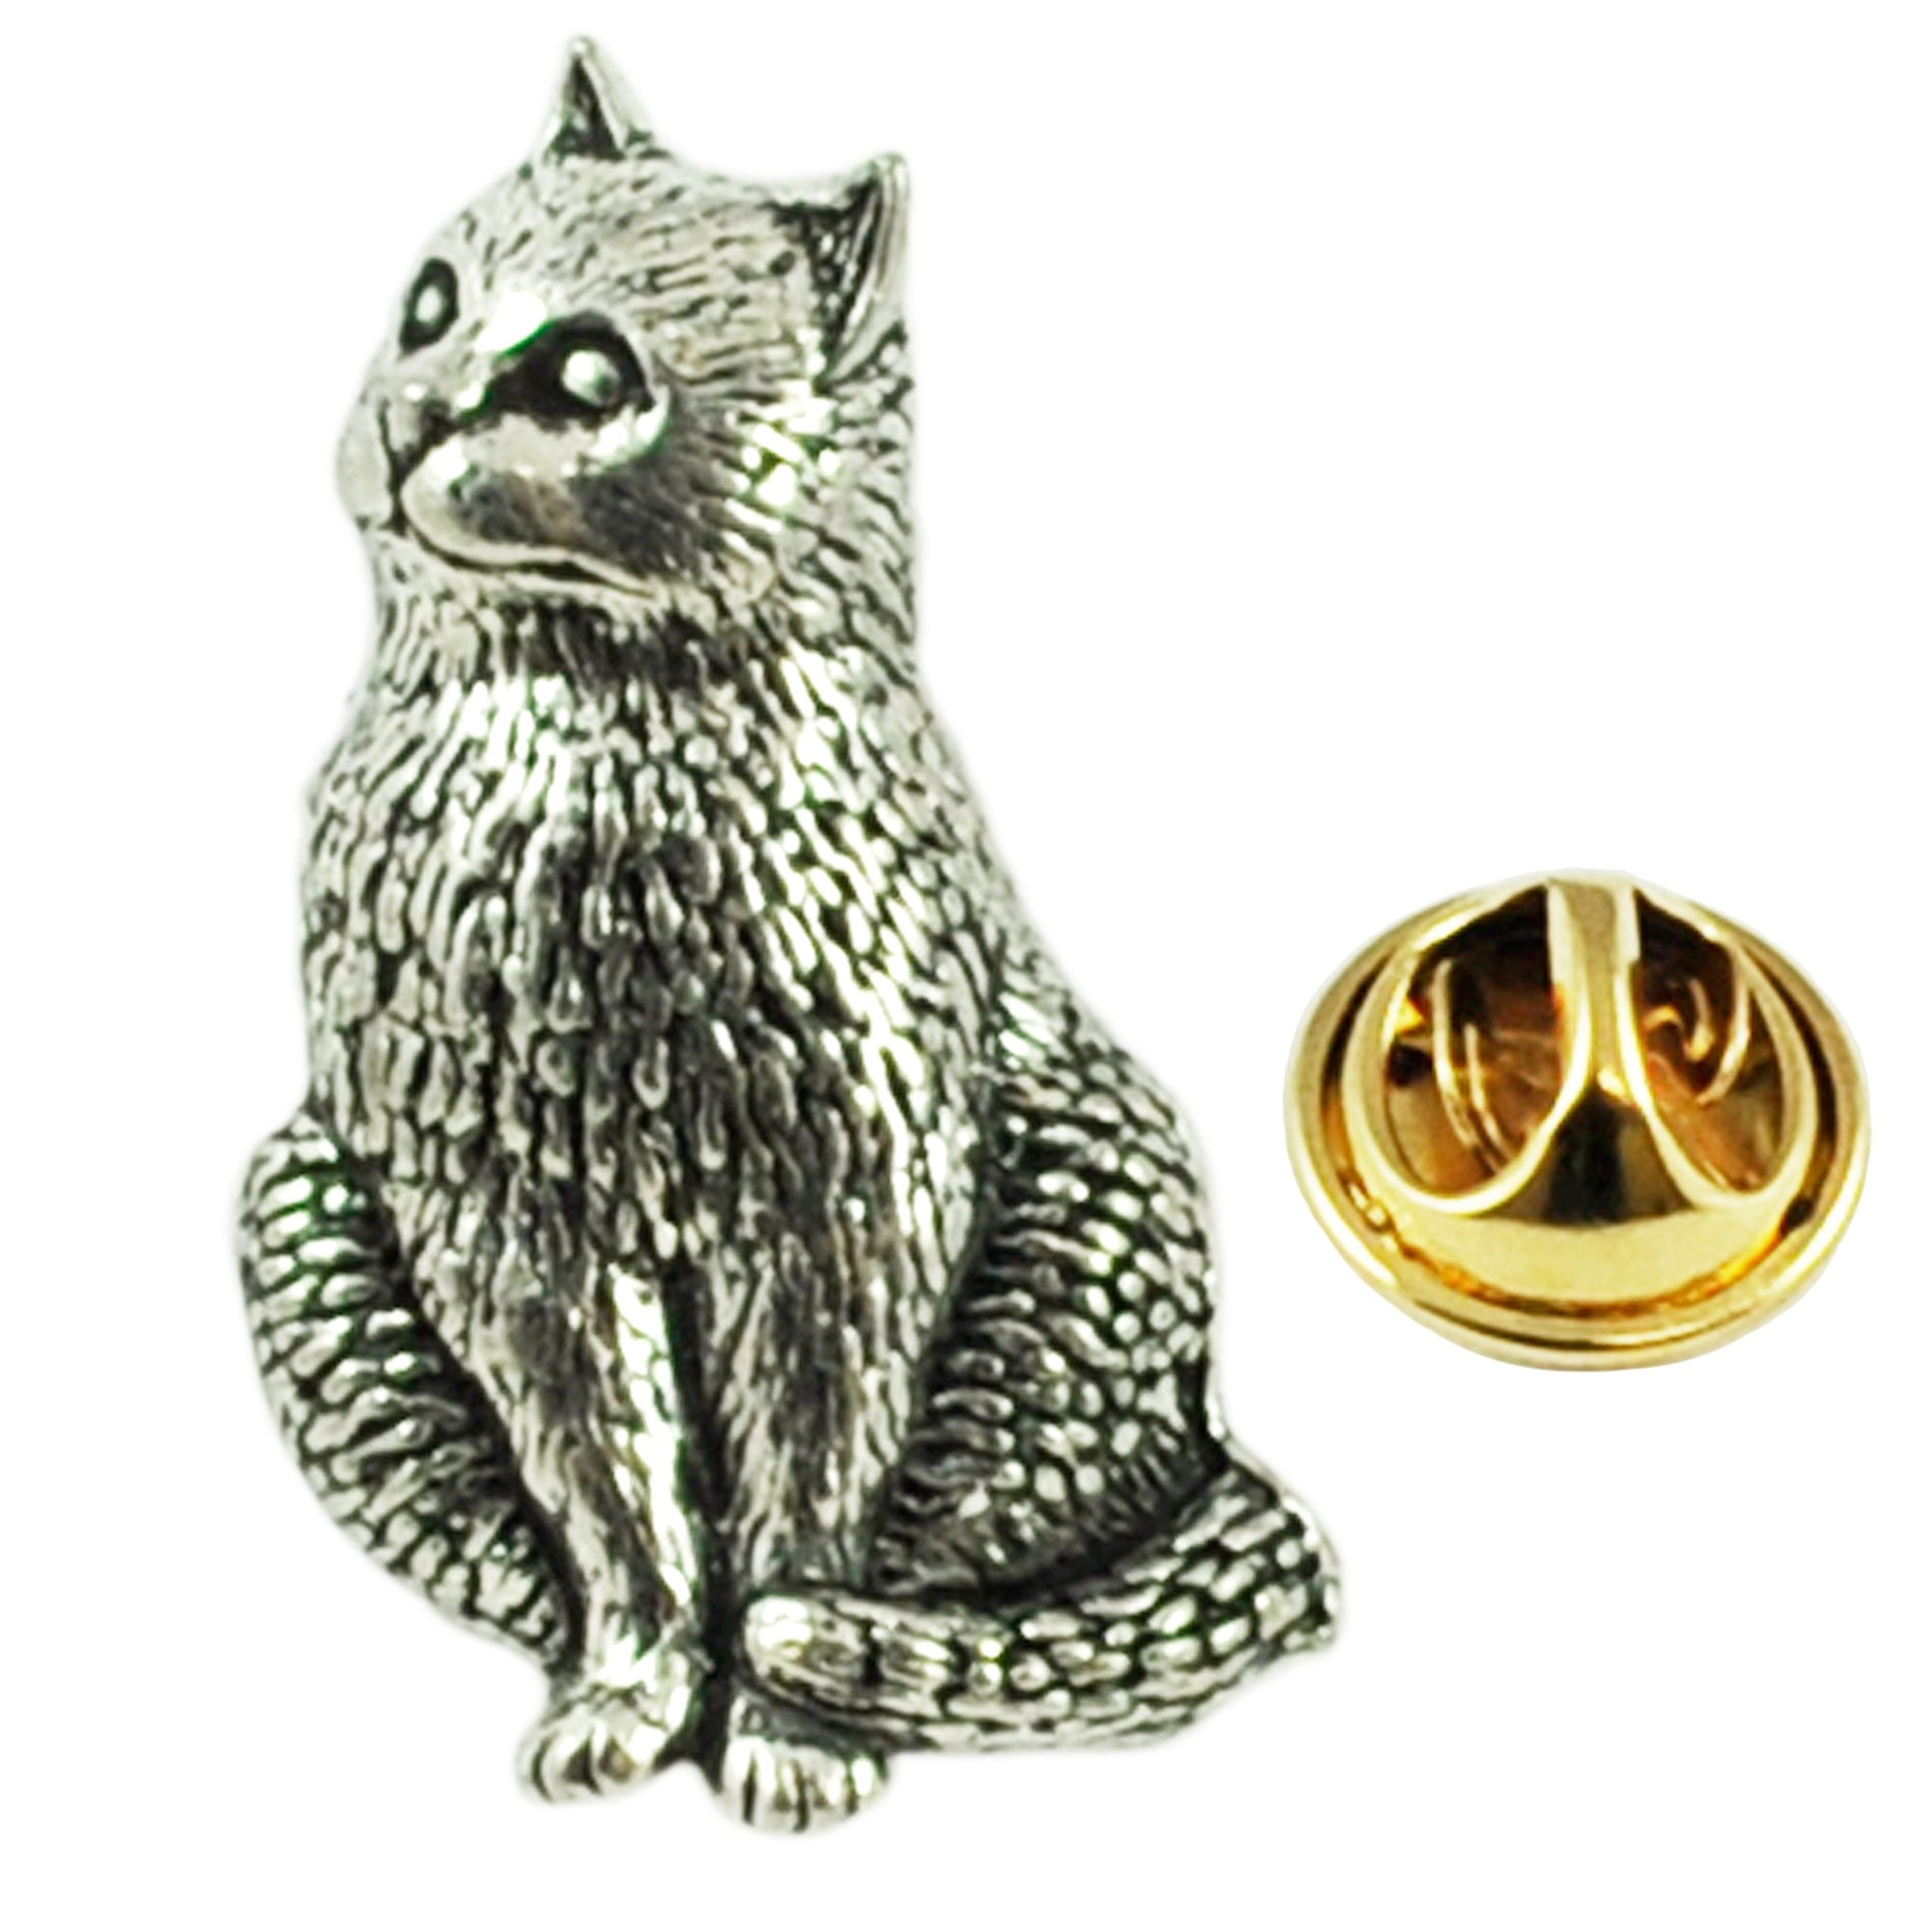 Silver Standing Cat Pewter Lapel Pin Badge Handmade In England Badges Cats New